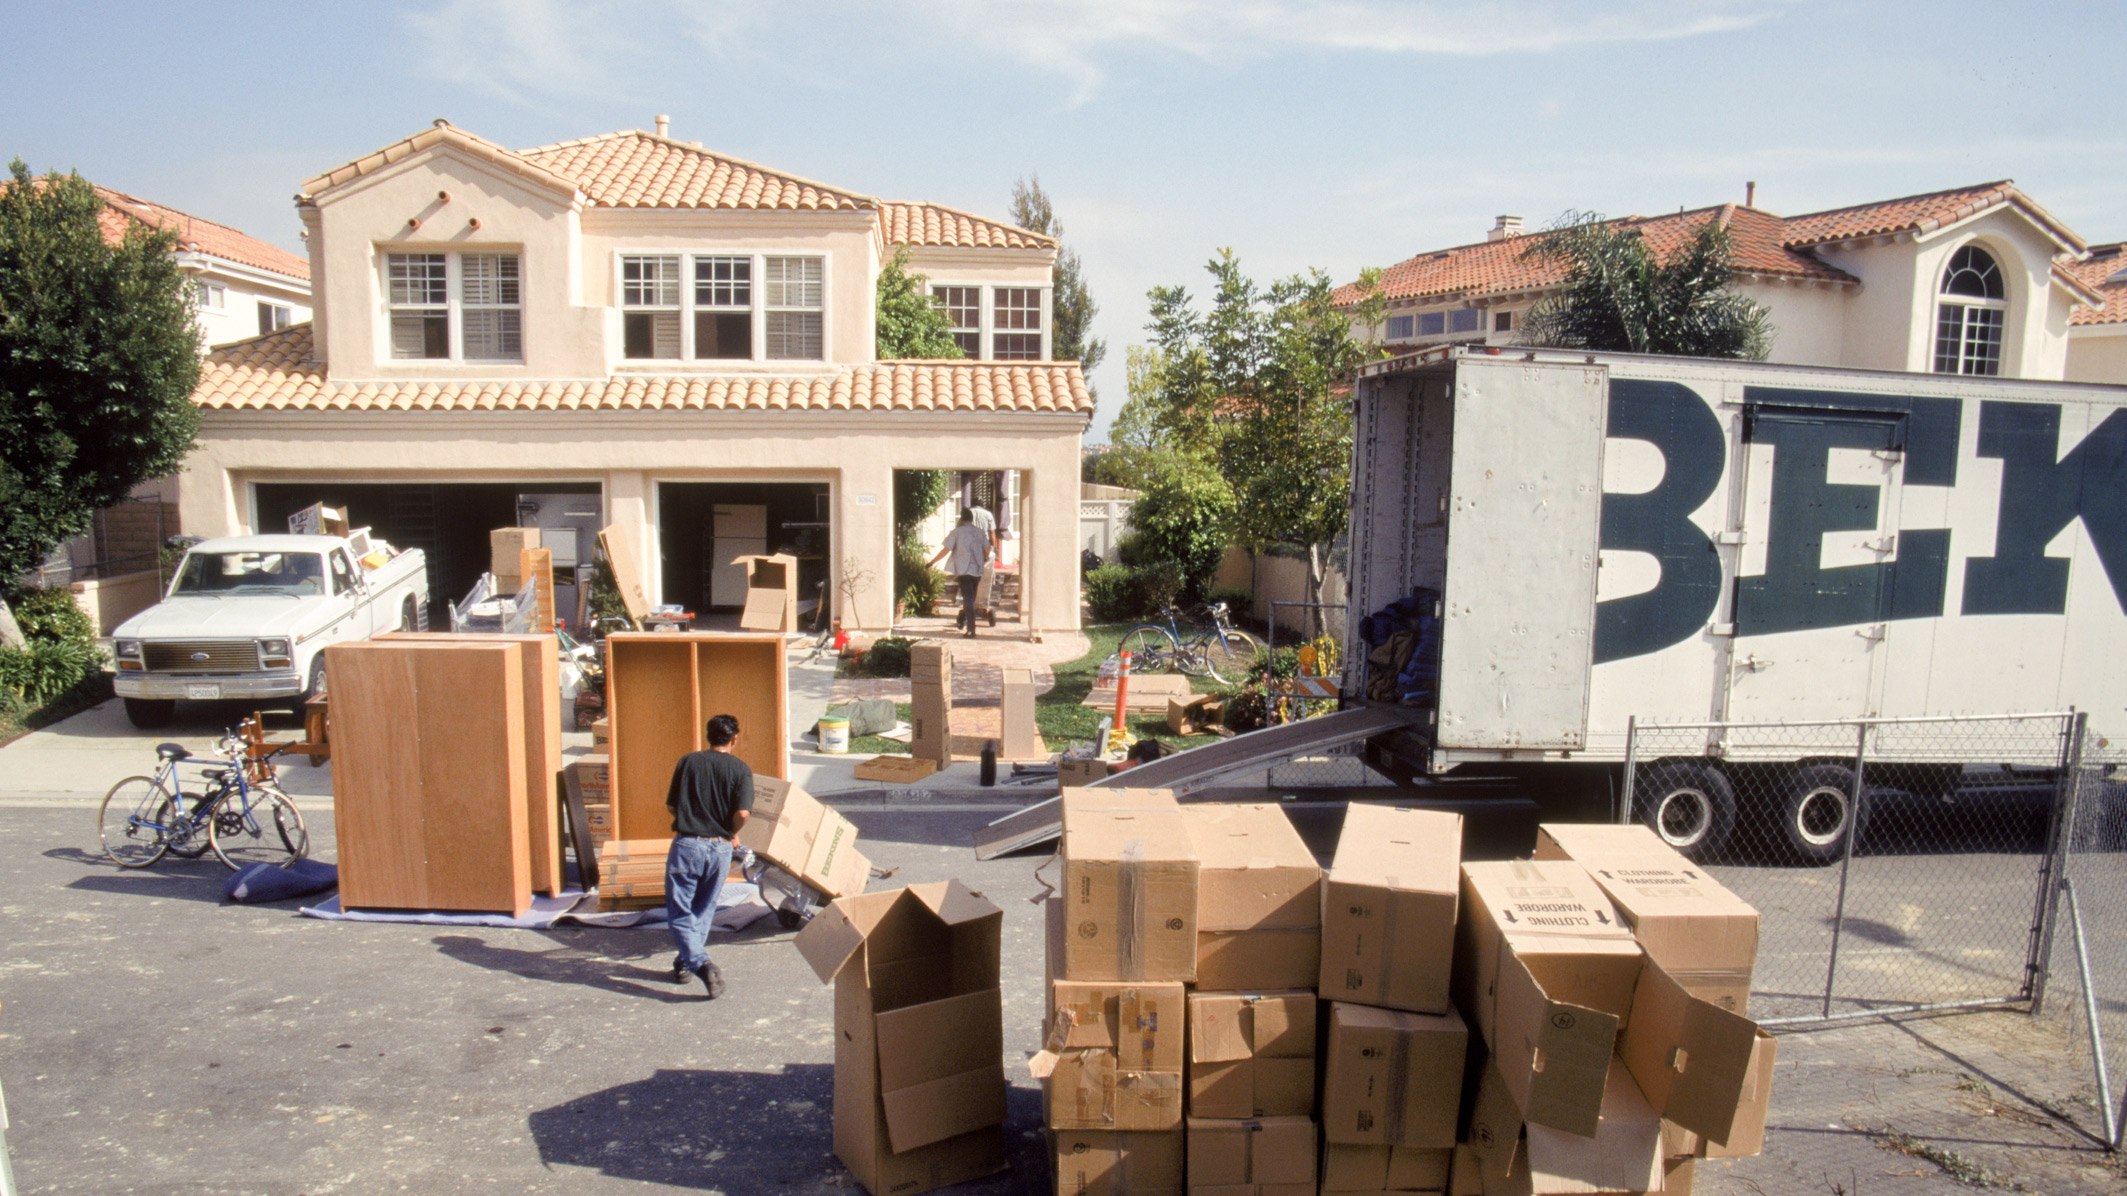 How to Choose Movers: Tips on Hiring a Moving Company You Can Trust